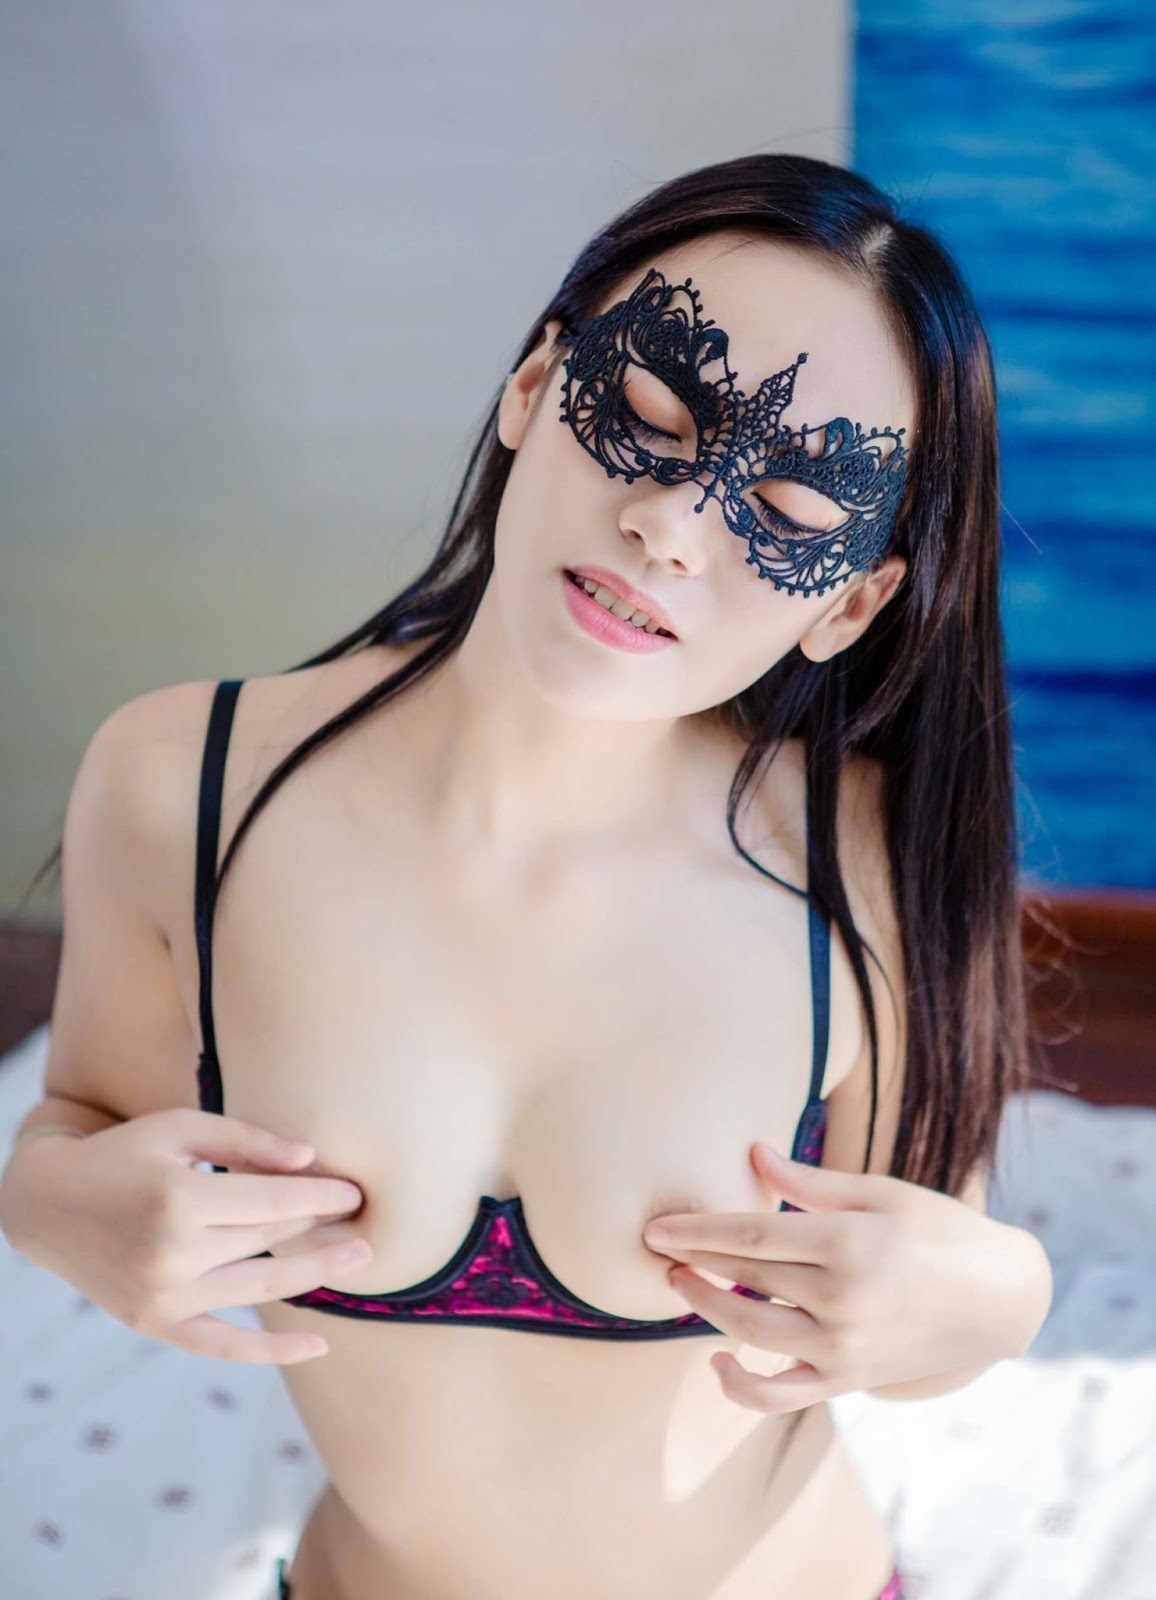 Hot Naked Thick Chinese Model Xiaohua 校花 Pussy Girl Maid Sex Slave Cosplay @PhimVu Category Sexy: bOoOb